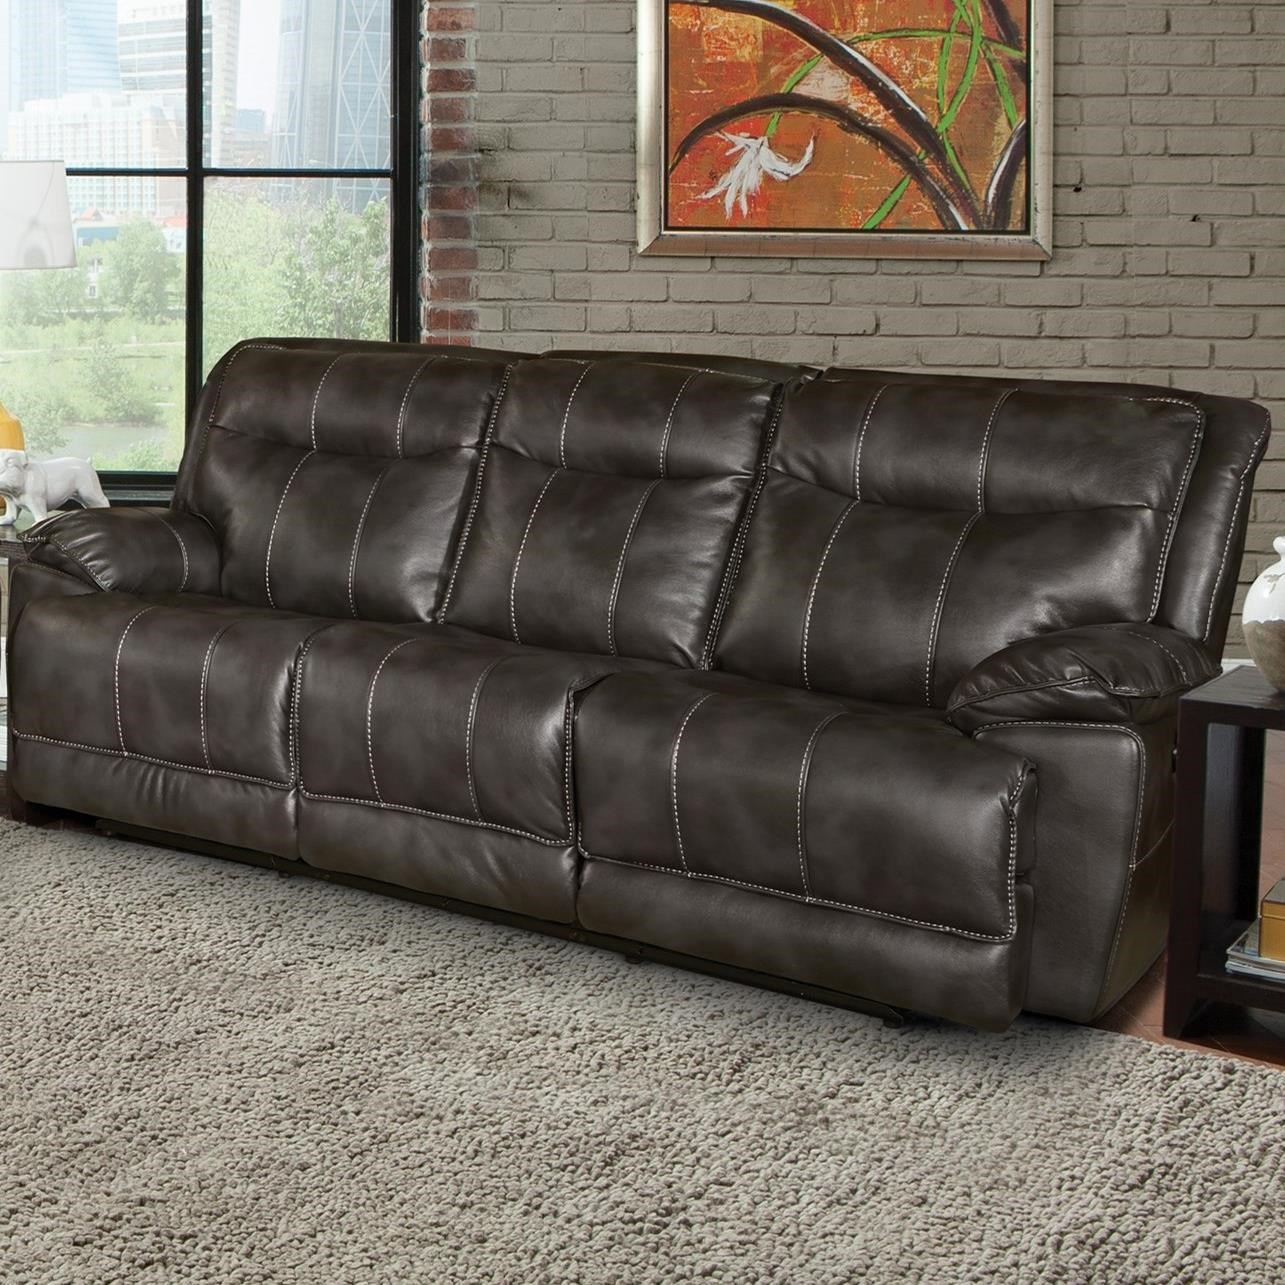 Parker Living Phoenix Dual Power Reclining Sofa - Item Number: MPHO-832P-FLI